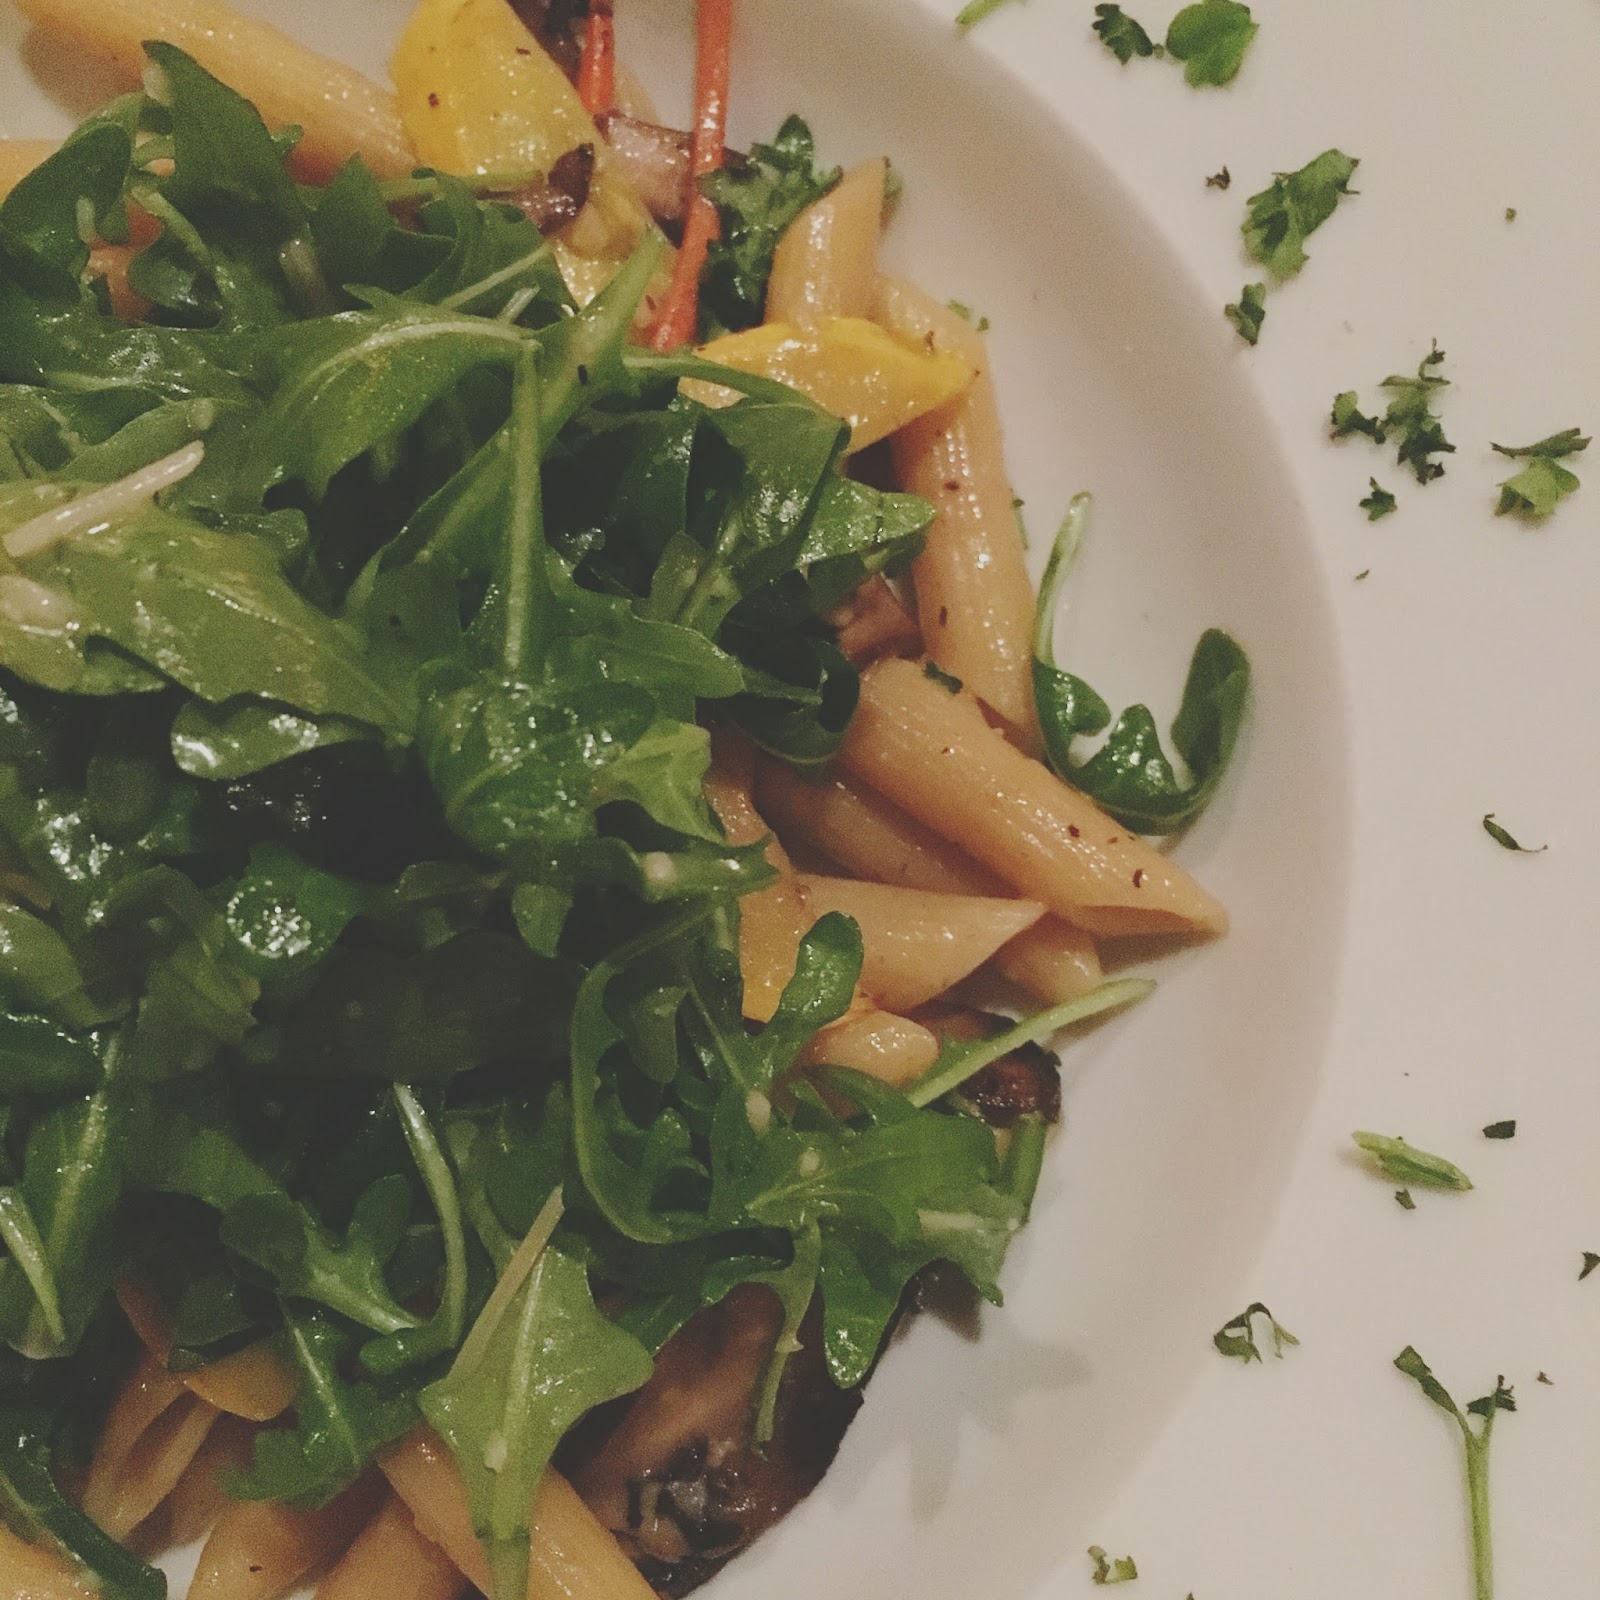 penne pasta with vegetables at The Union Kitchen, a restaurant in Houston